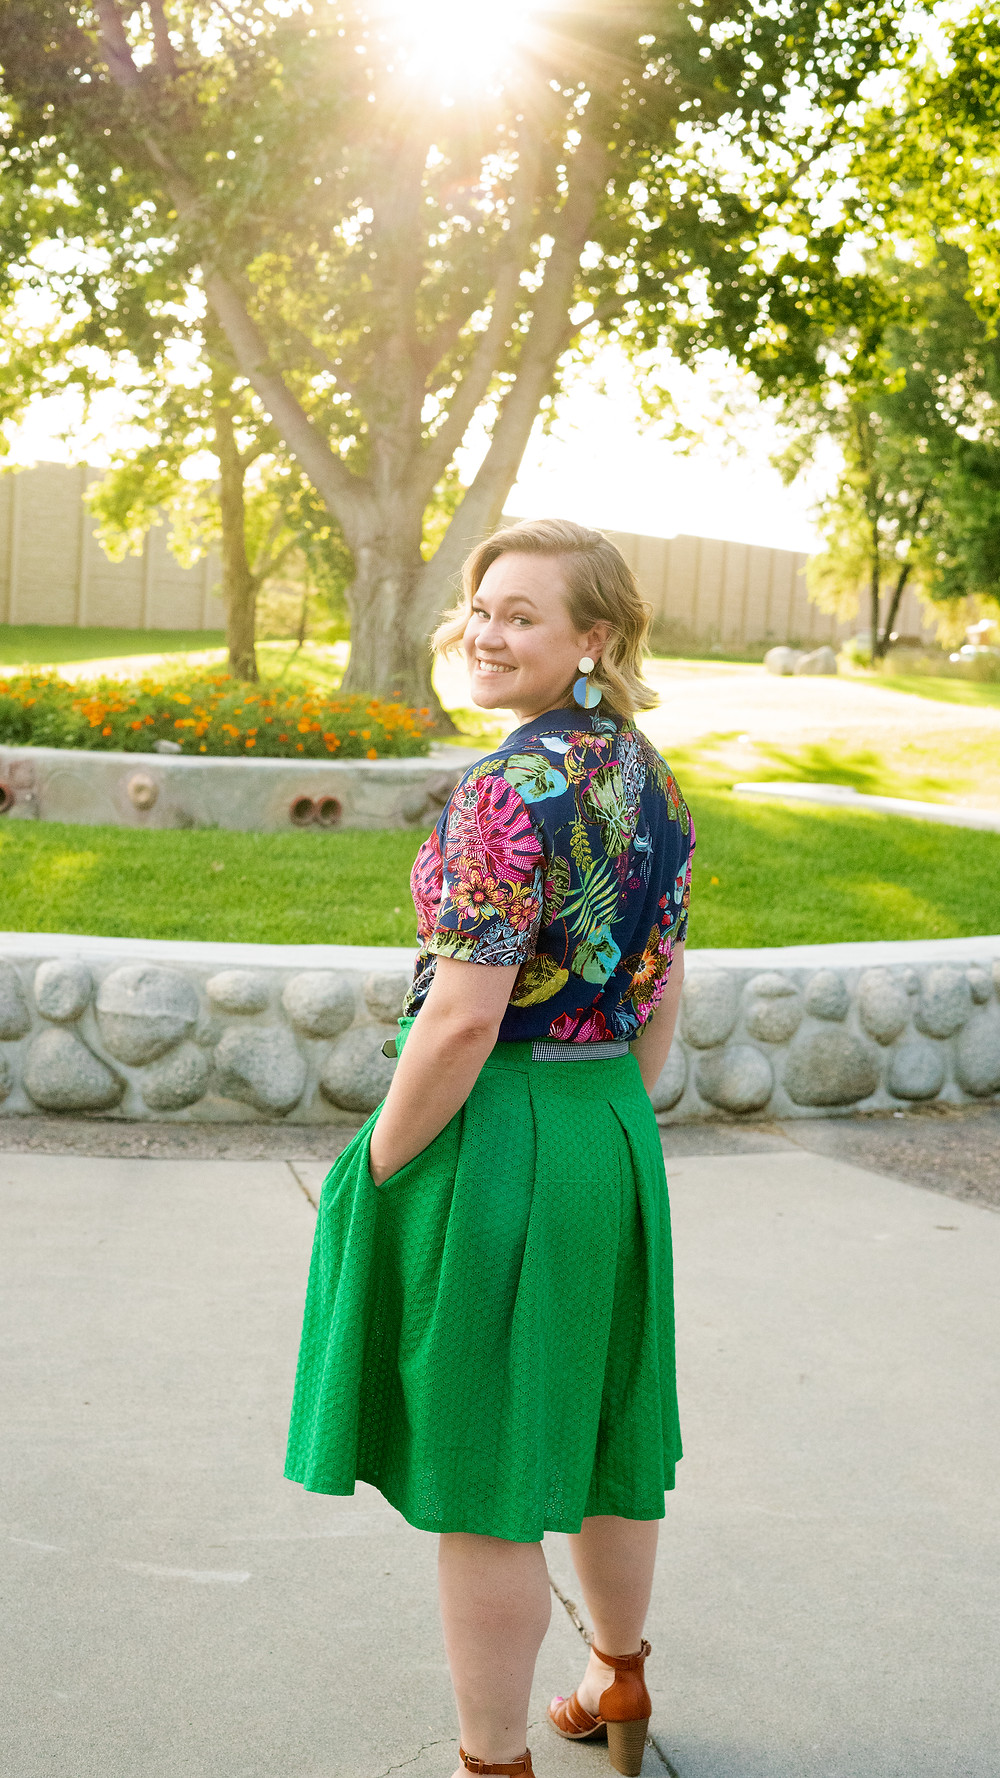 McCall's 7906 Green Pleated Skirt and the Natalie Top by Seamwork Patterns